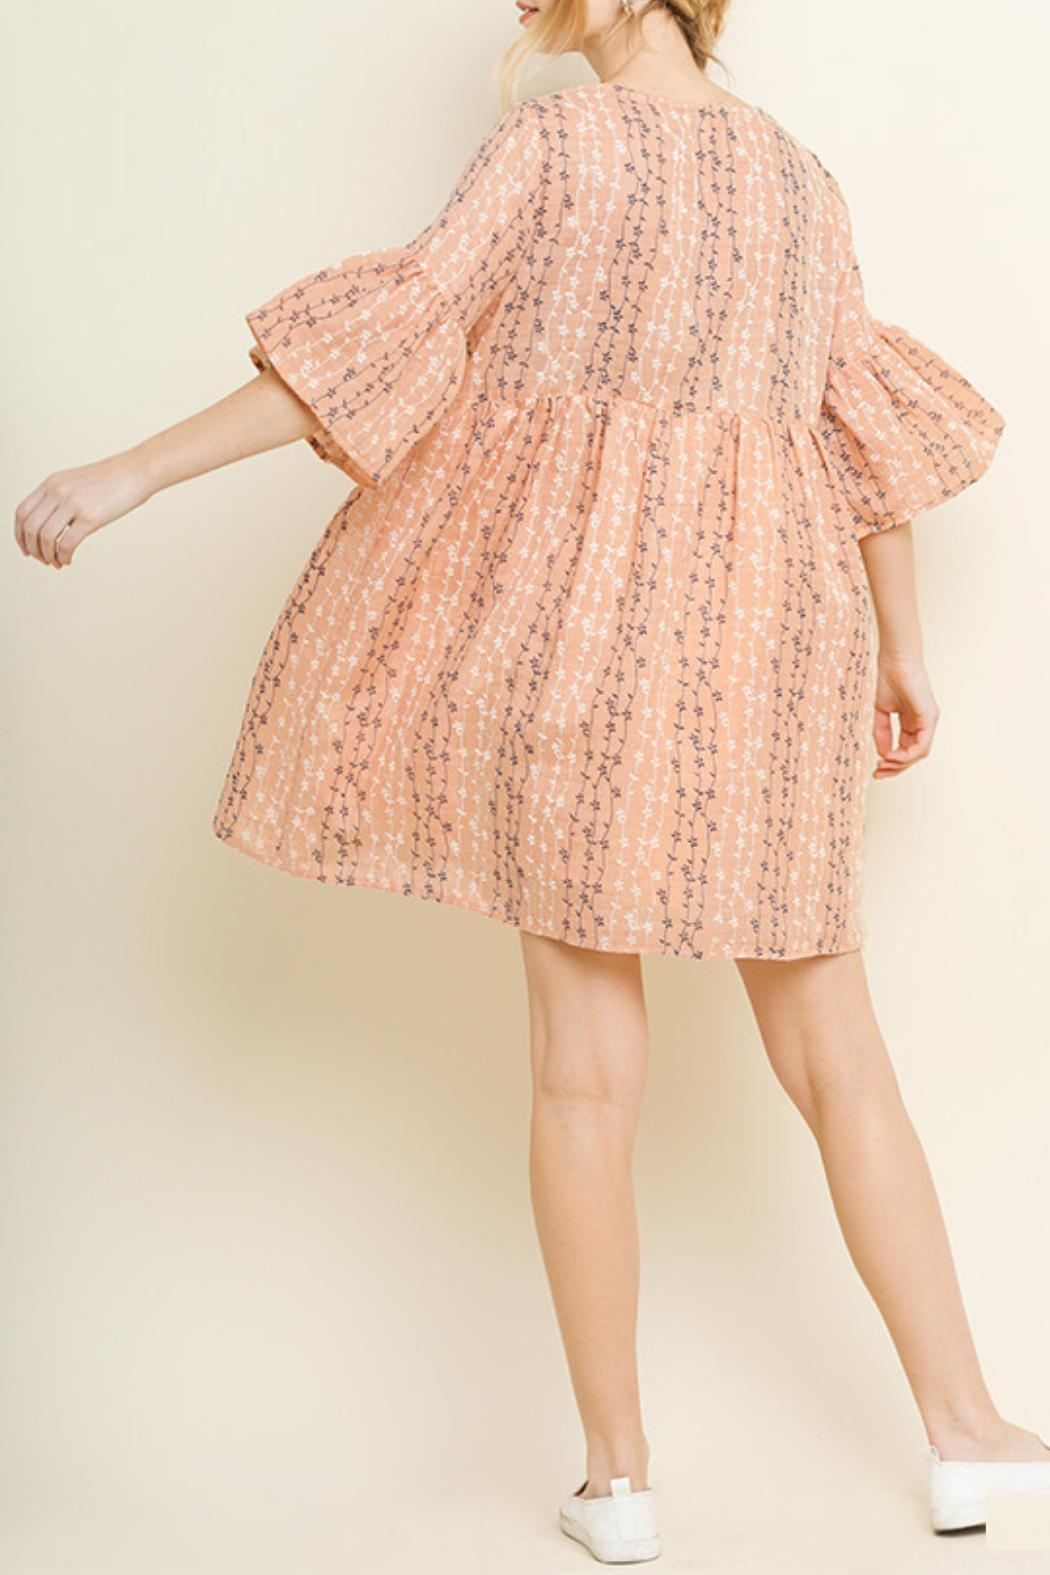 Umgee USA Blush Babydoll Dress - Back Cropped Image